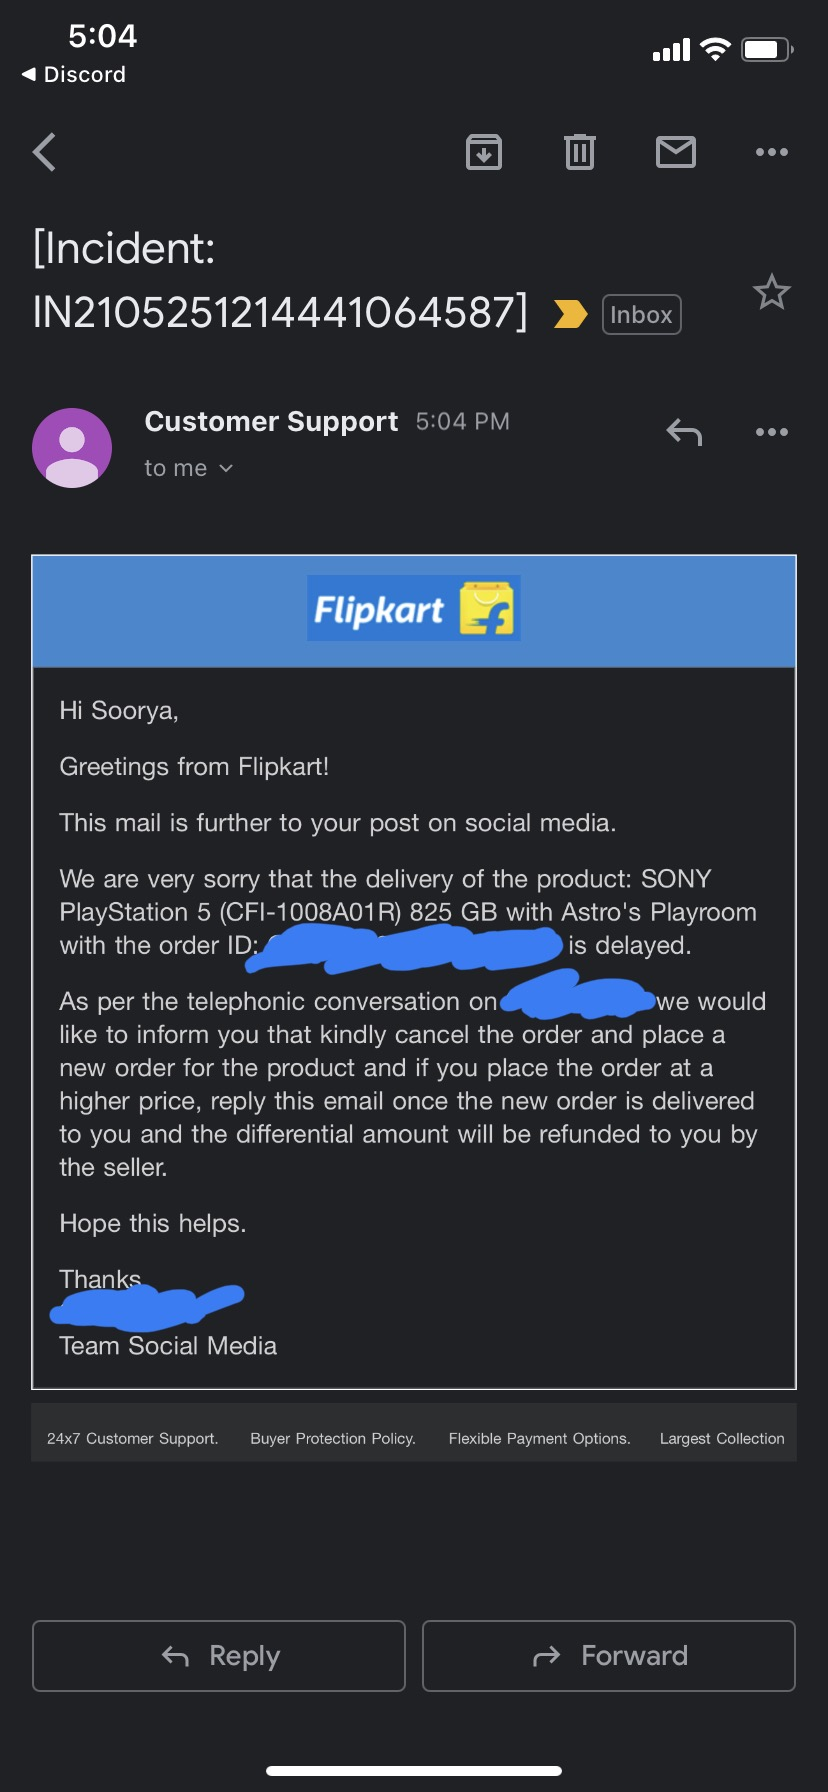 Flipkart's Mail to a customer to cancel PS5 order